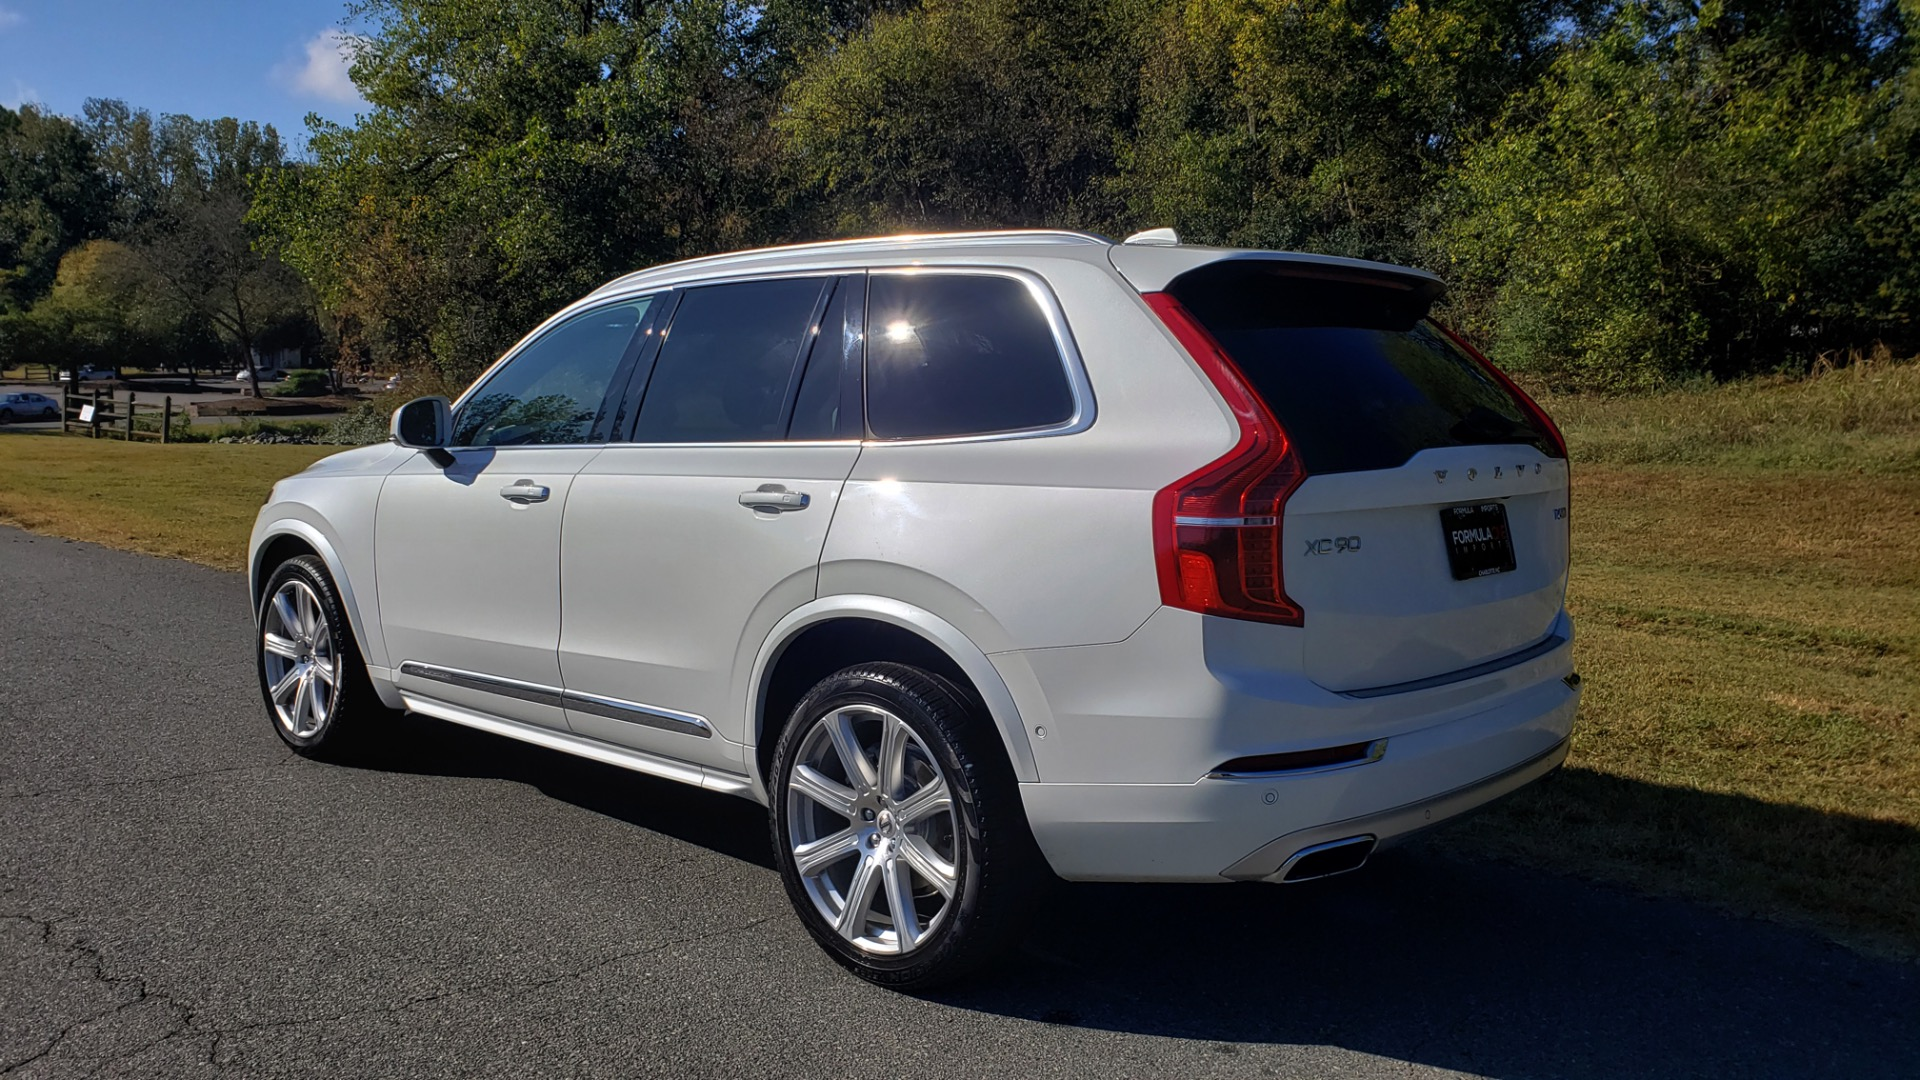 Used 2017 Volvo XC90 INSCRIPTION / AWD / NAV / SUNROOF / 3-ROW / CAMERA for sale Sold at Formula Imports in Charlotte NC 28227 3